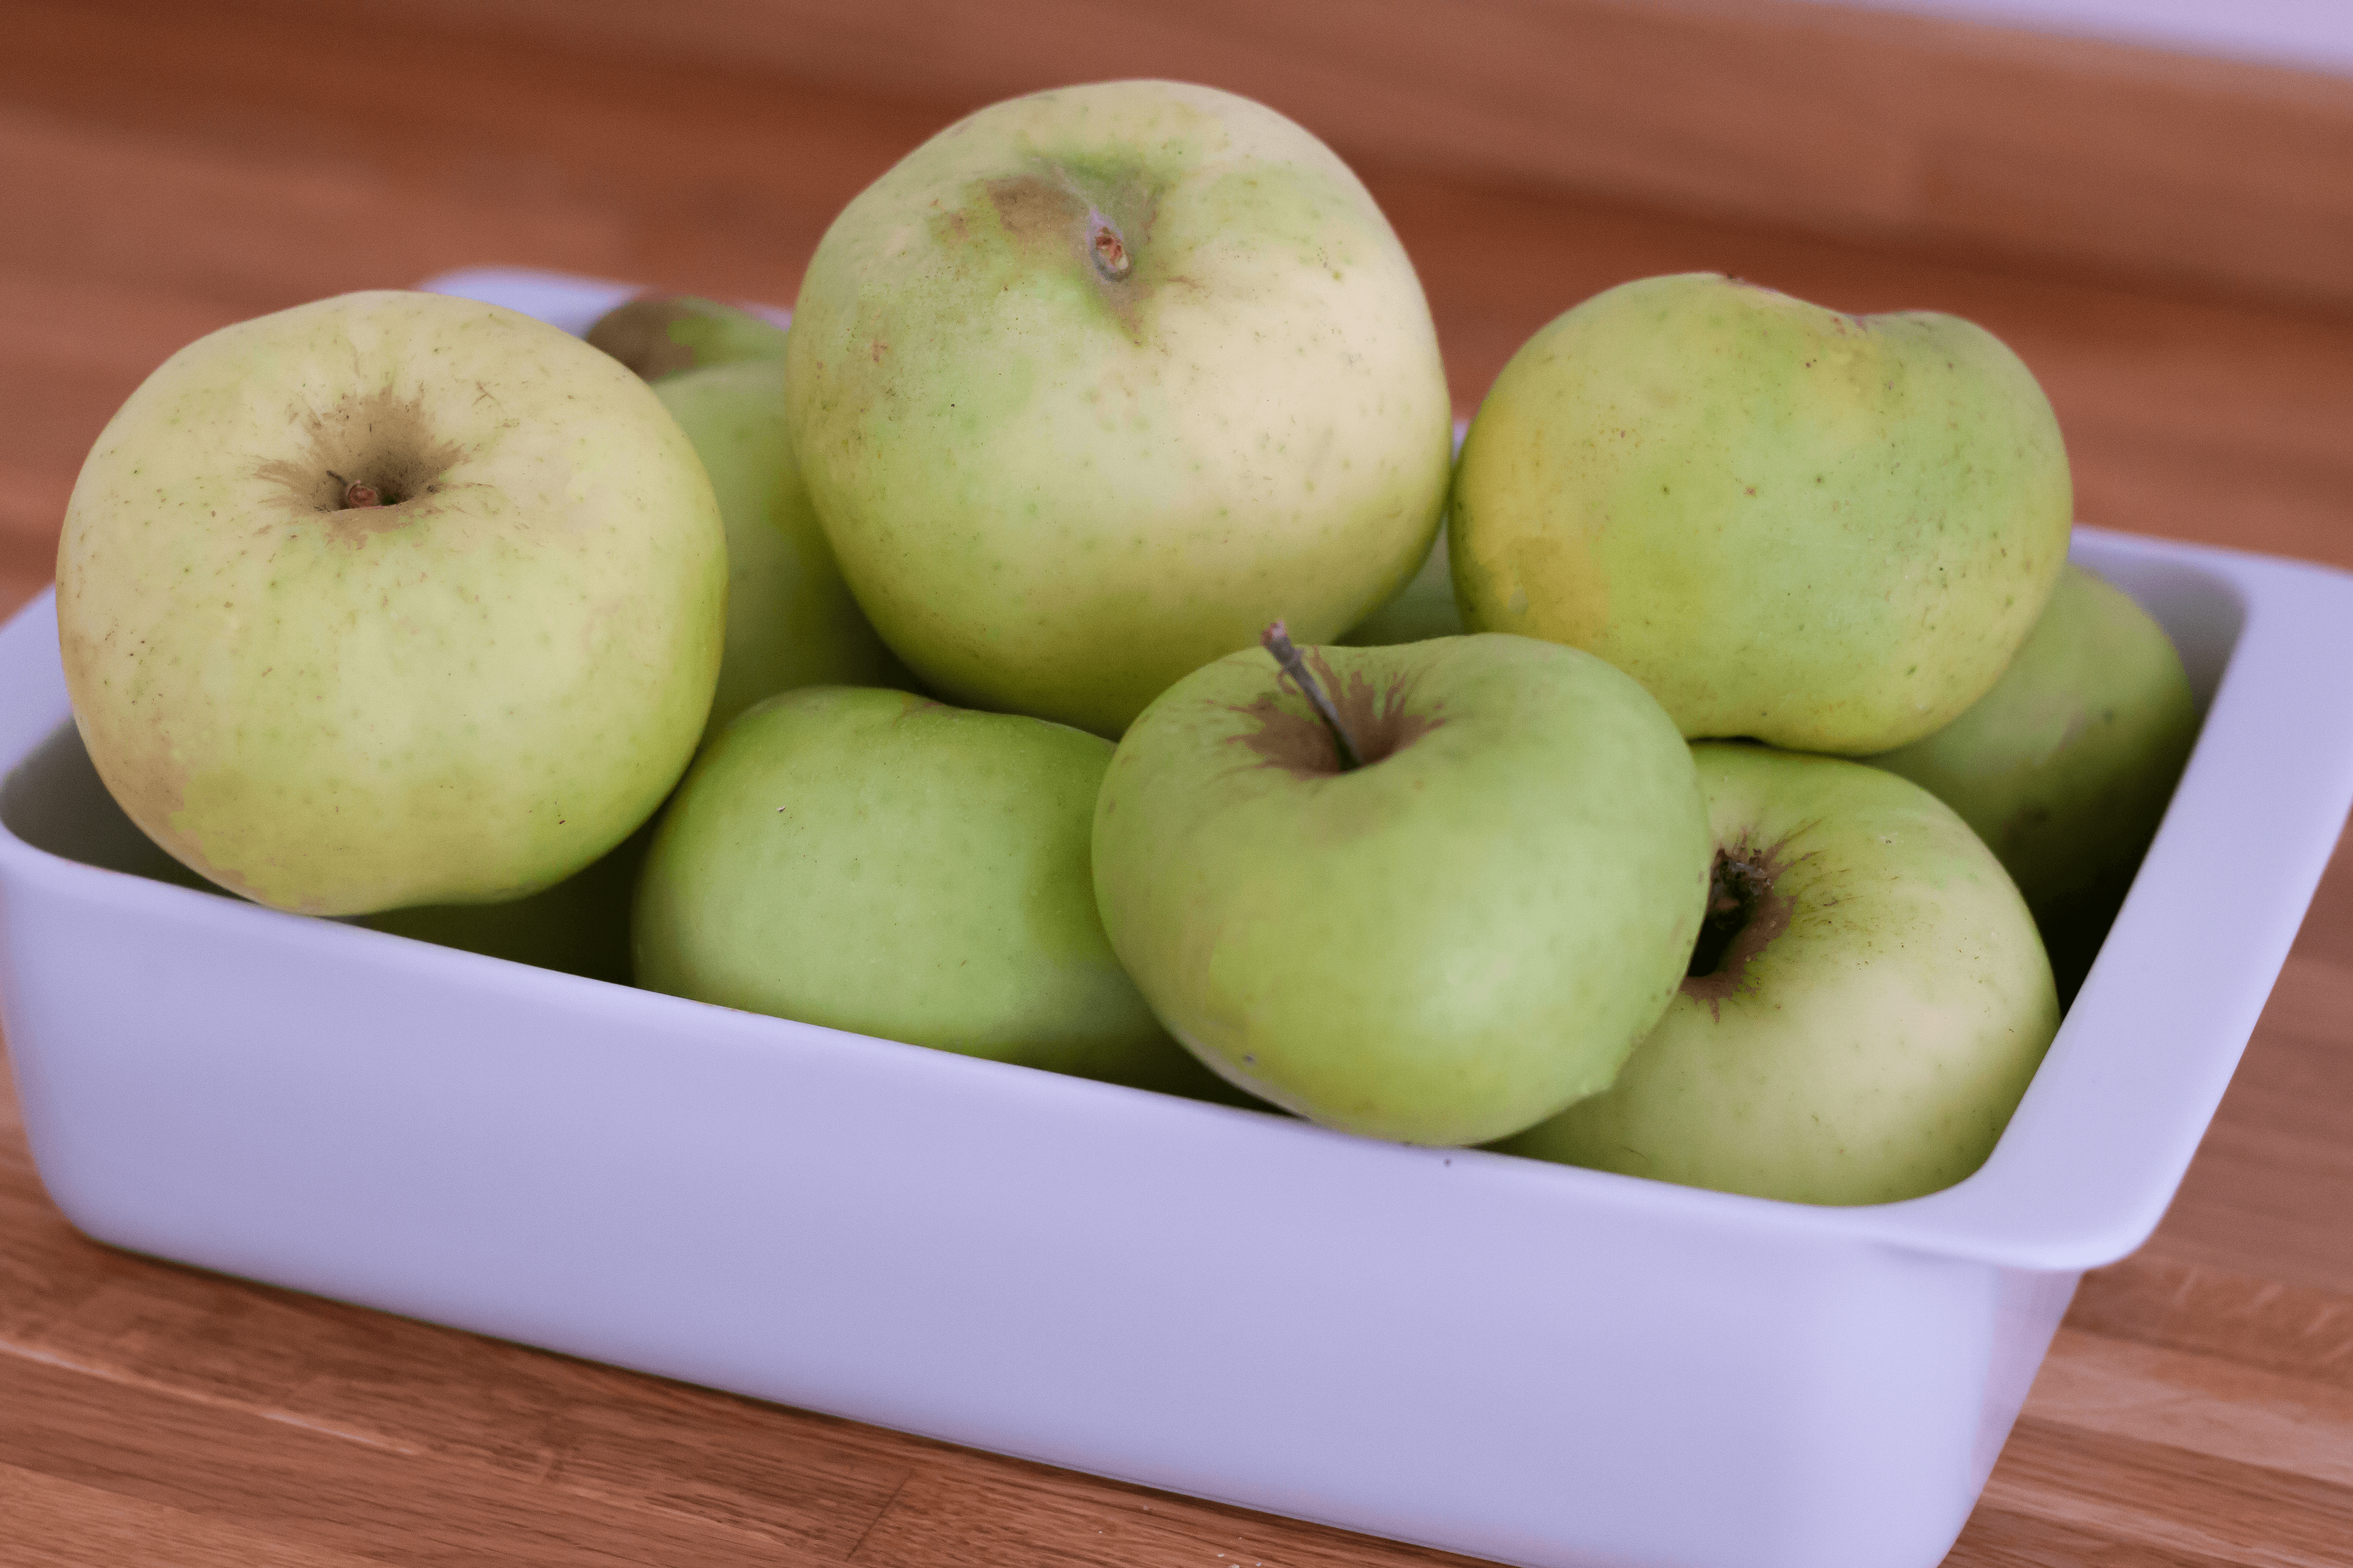 Homegrown apples - perfect for autumn bakes